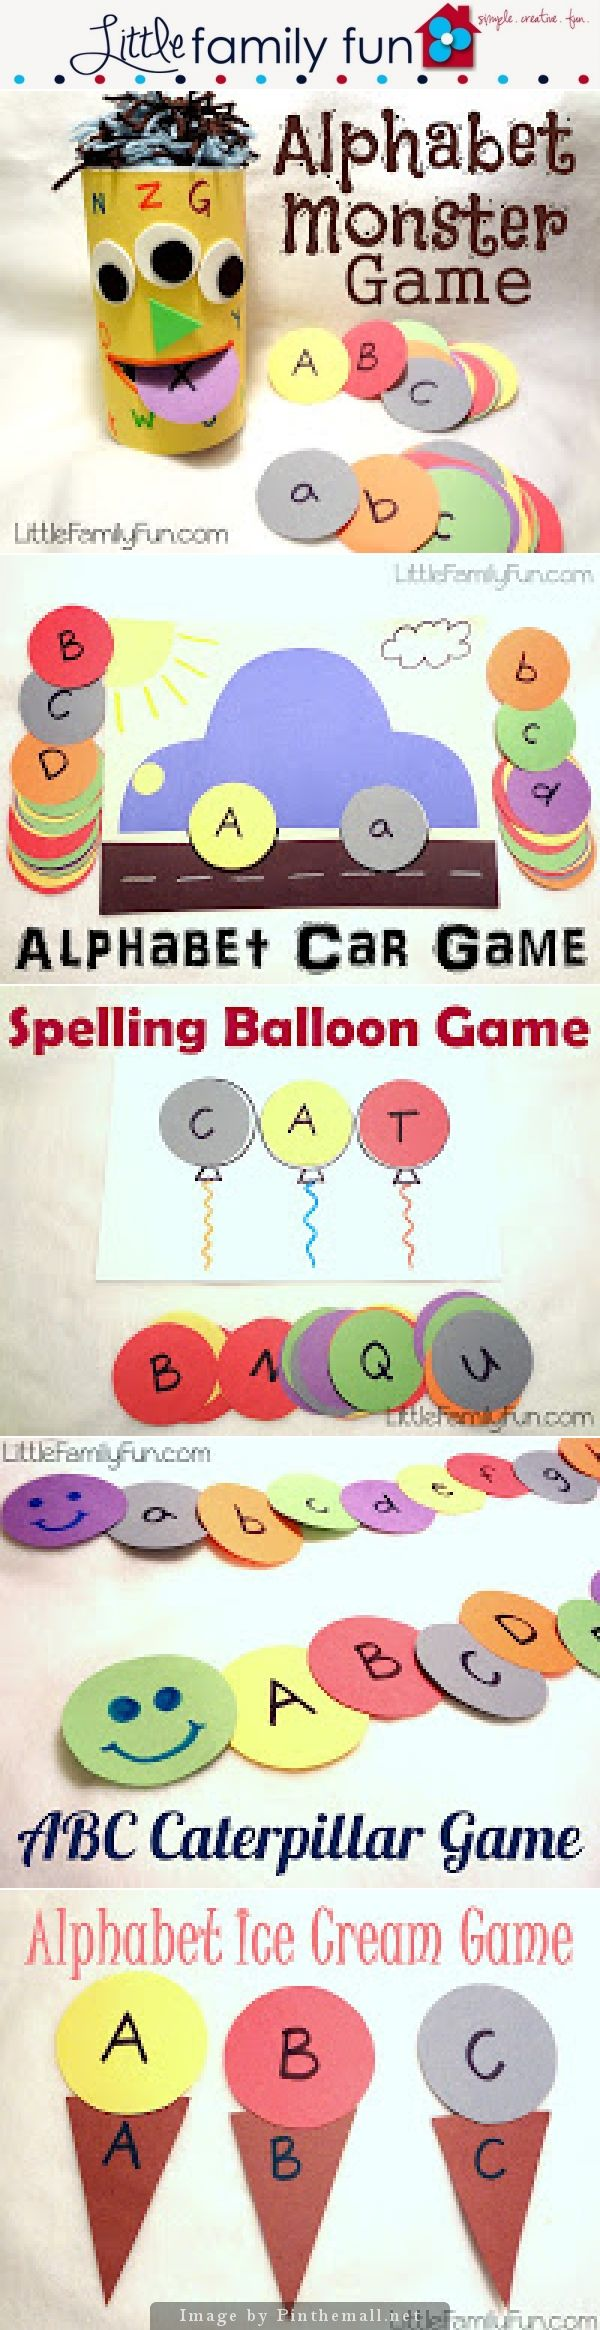 5 Easy To Make A-B-C Games Using Paper Circles! Children will enjoy learning the alphabet with these cute games | Alphabet Monster Game | Alphabet Car Game | Spelling Balloon Game | A-B-C Caterpillar Game | Alphabet Ice Cream Game |